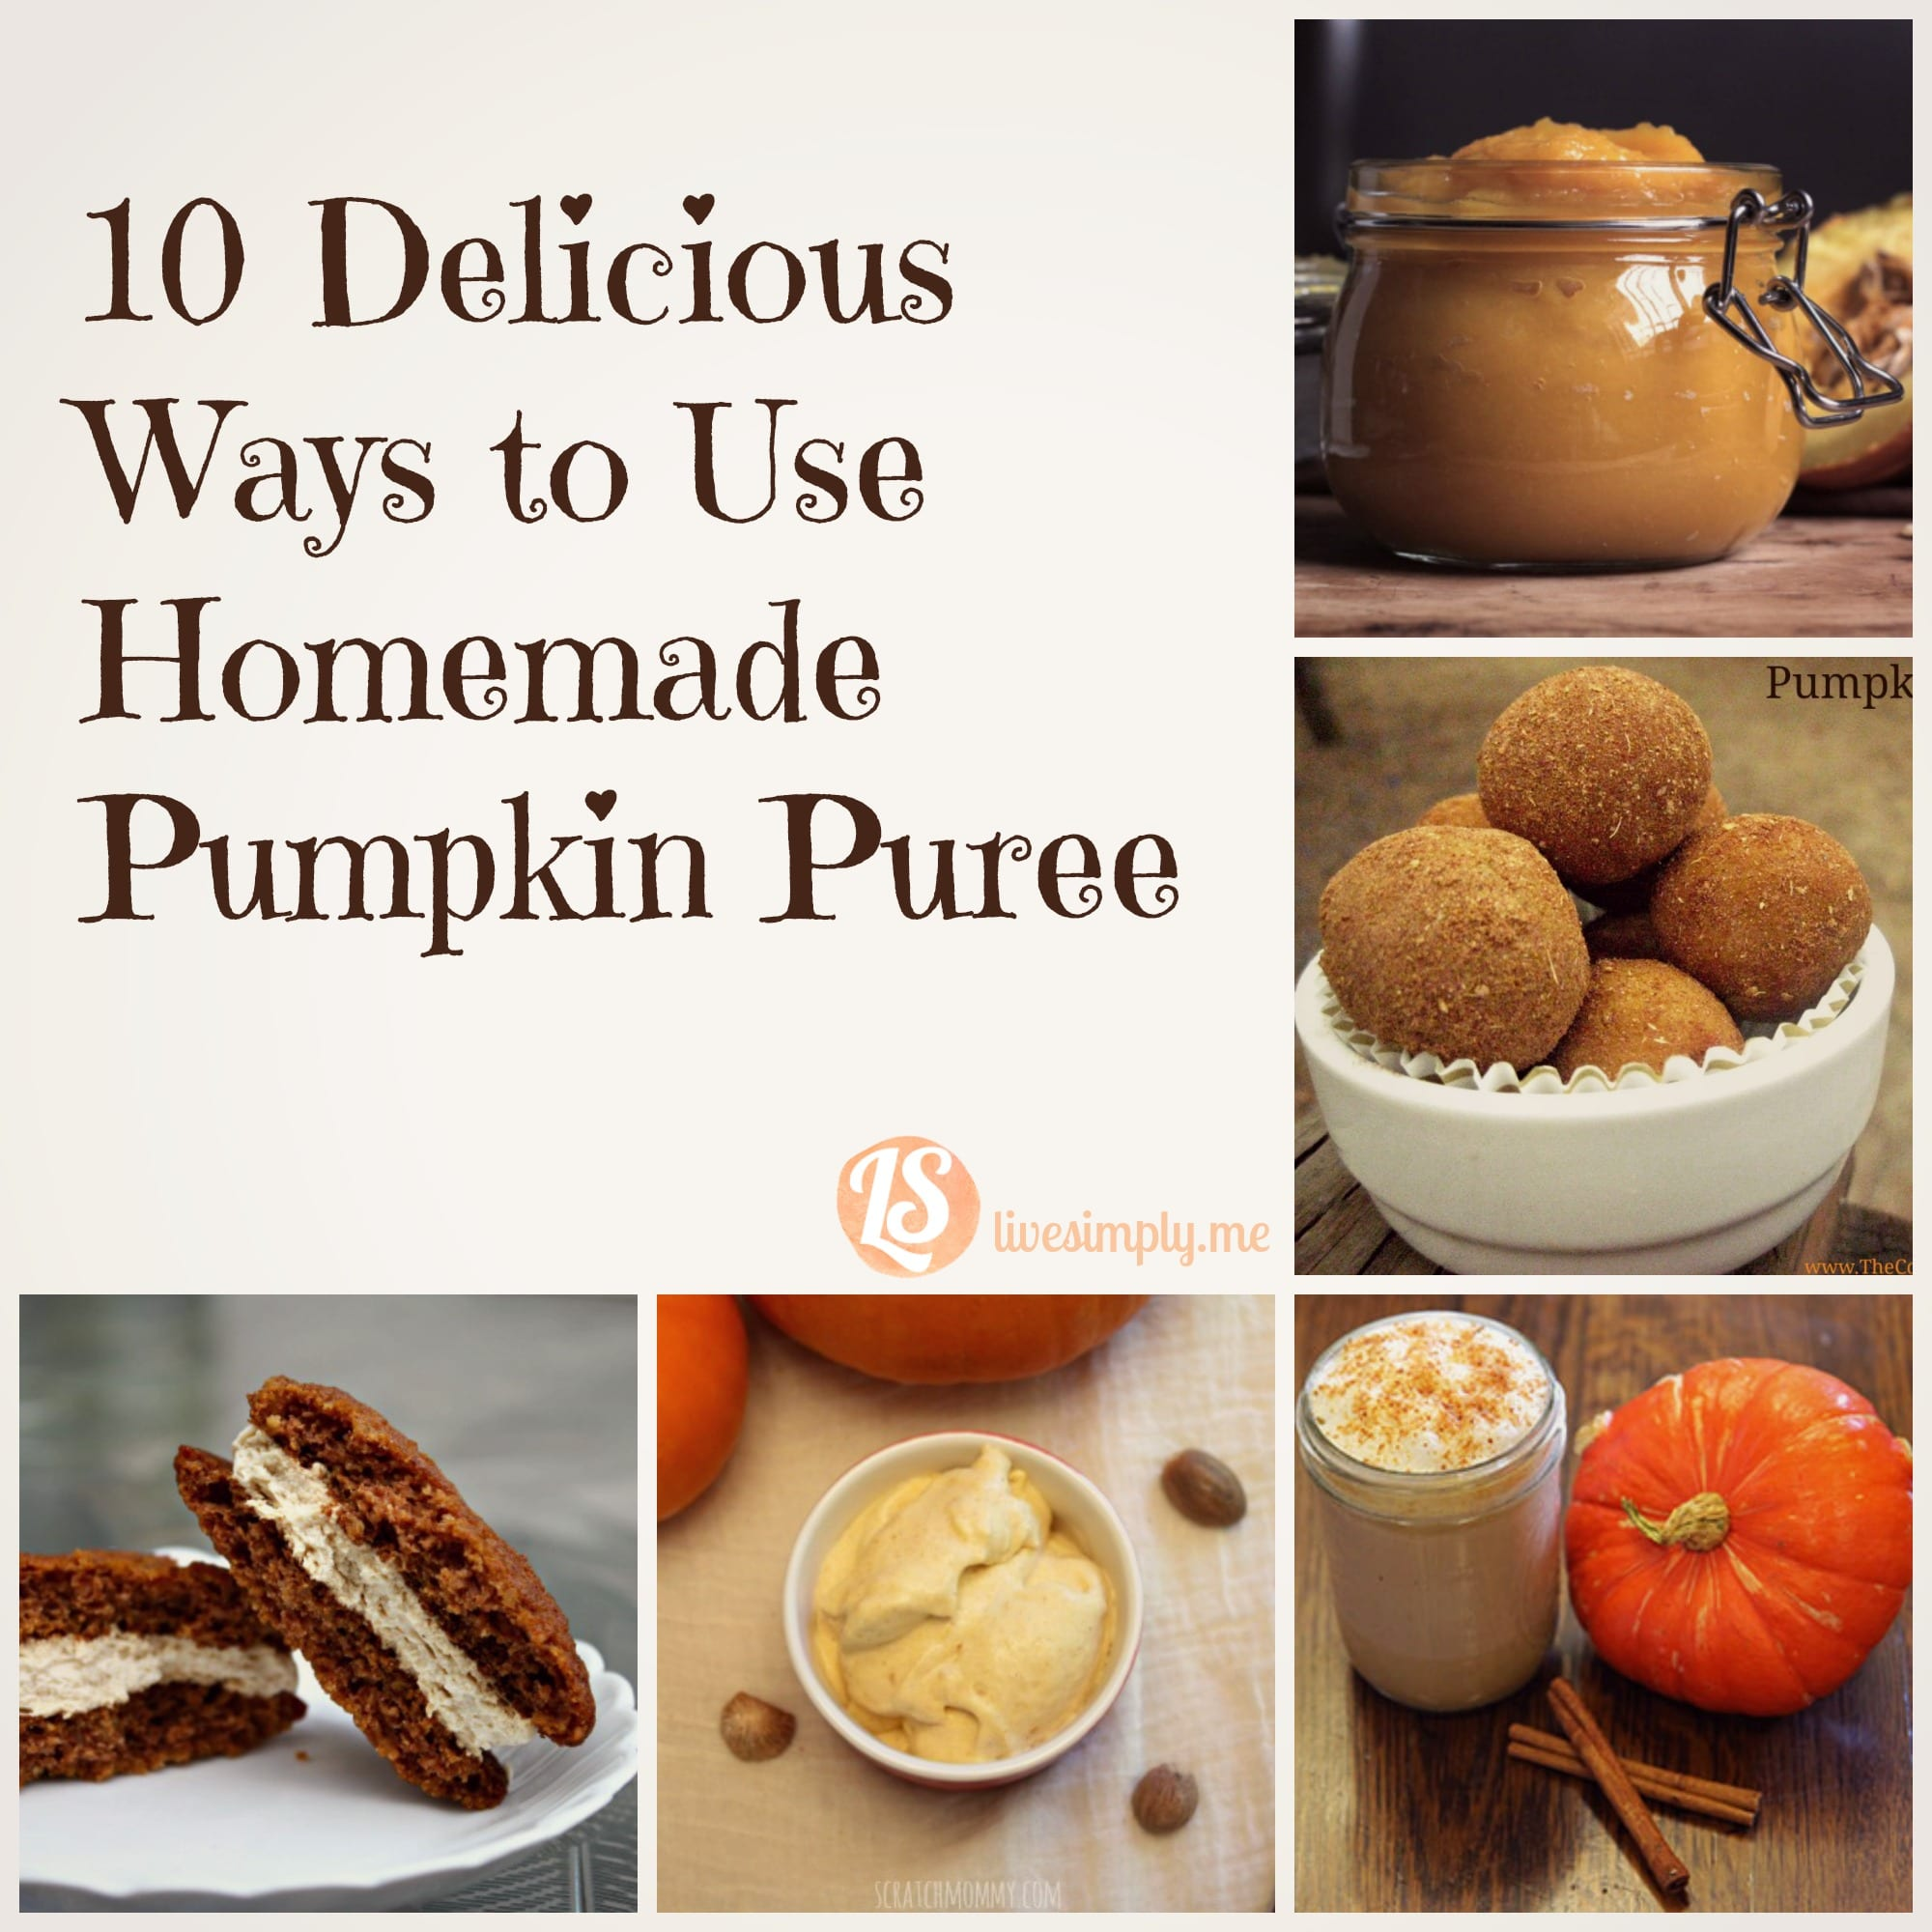 Ten Delicious Ways to Use Homemade Pumpkin Puree - Live Simply